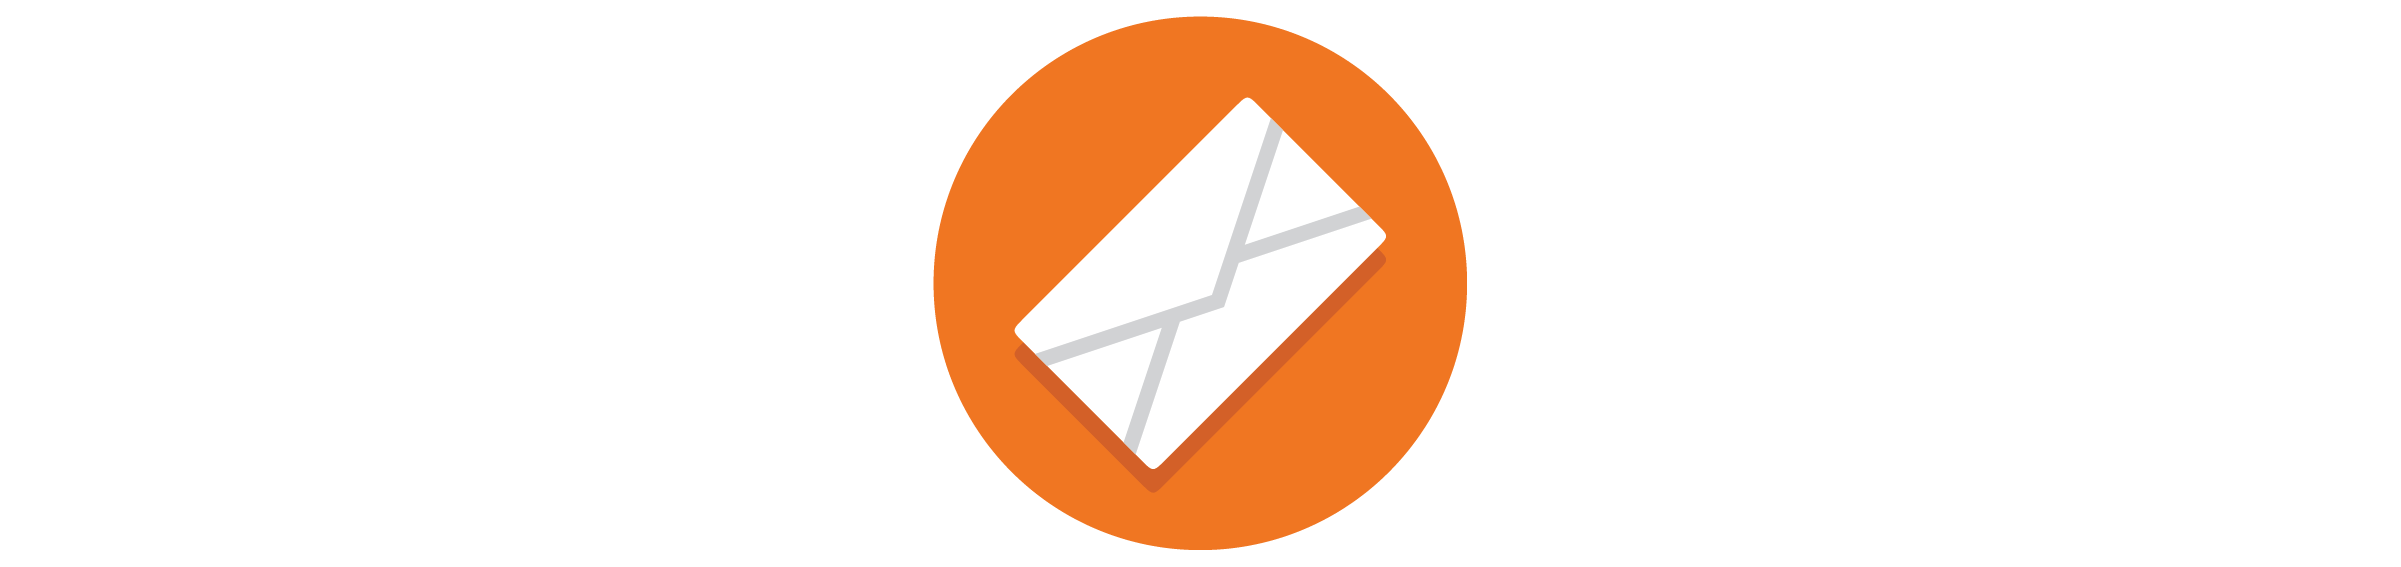 Email (Web).png